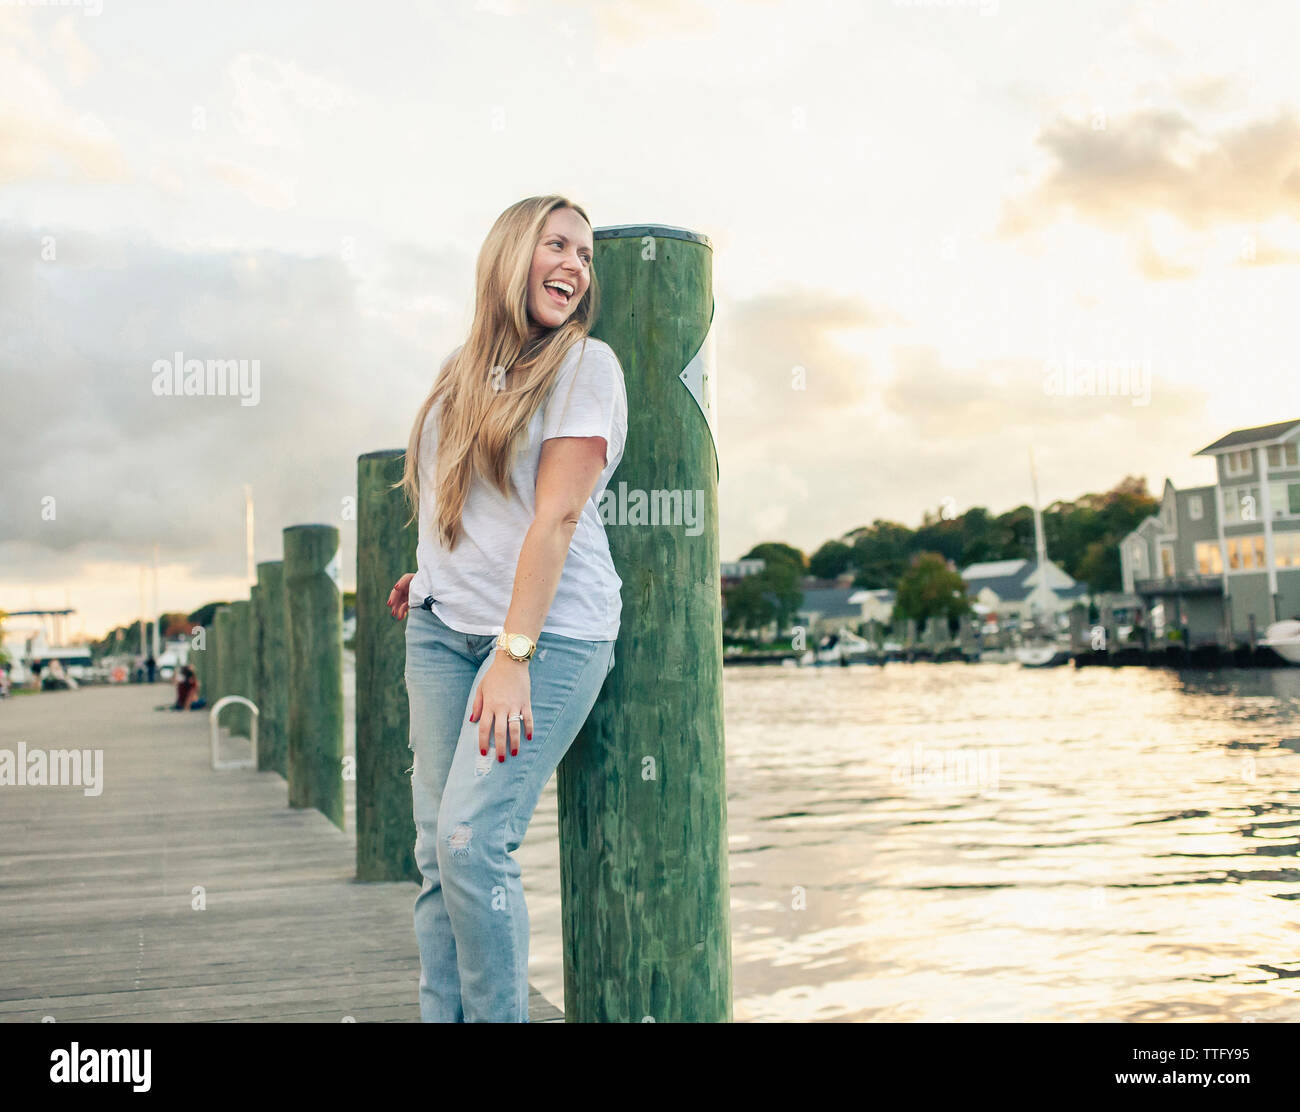 Happy woman screaming while standing on pier over river against sky during sunset Stock Photo